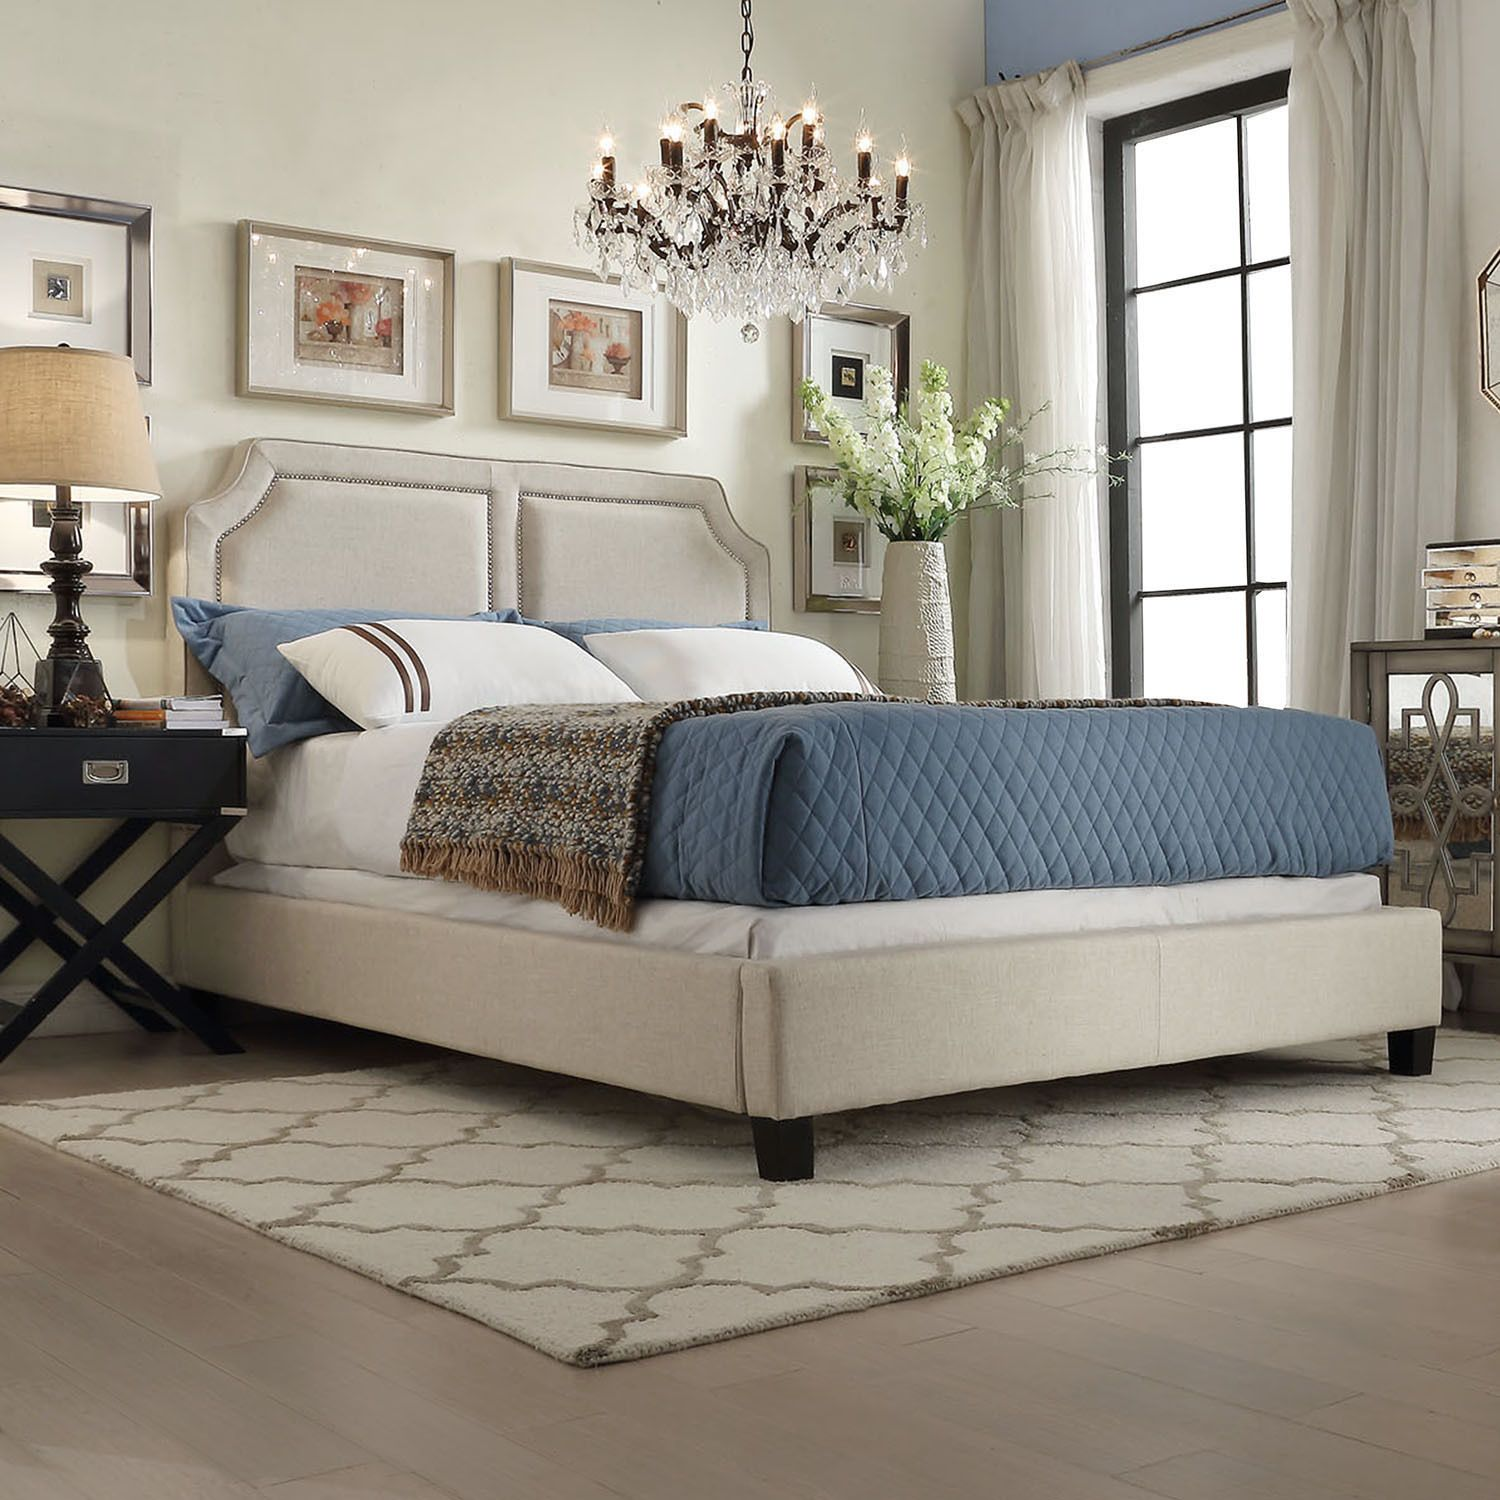 INSPIRE Q Harlow Arched Panel Nailhead Beige Linen Upholstered Queen-size  Platform Bed by iNSPIRE Q